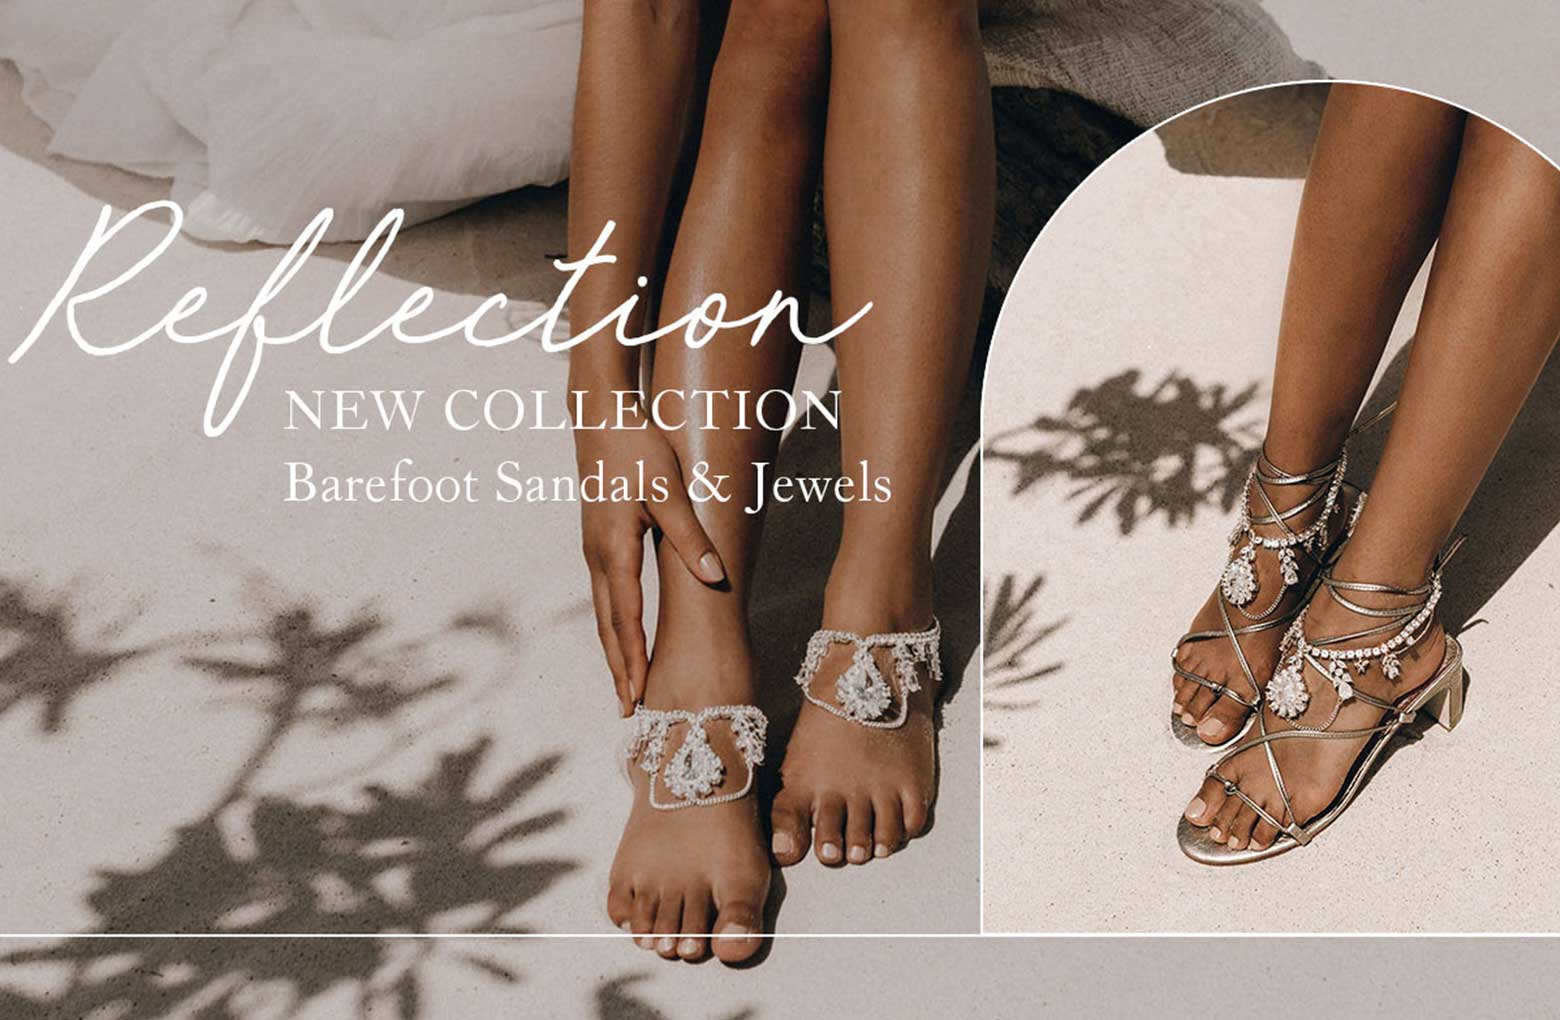 REFLECTION COLLECTION BAREFOOT SANDALS